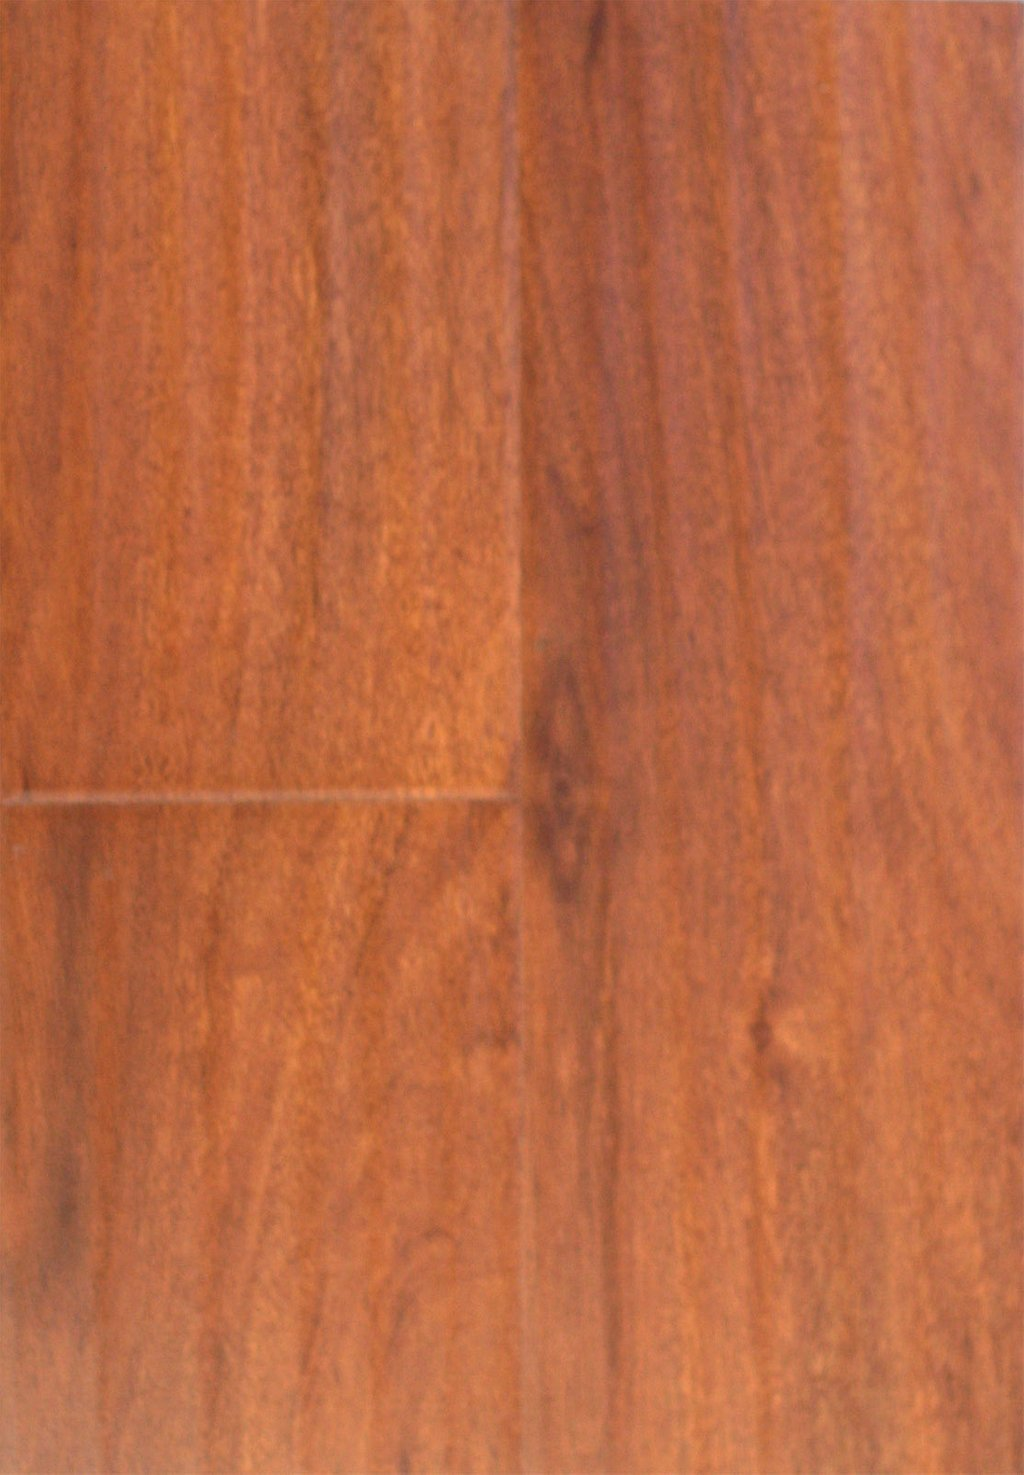 12mm Santo Andre Brazilian Cherry Laminate Flooring Tiger Wood Flooring For A Warmer Home